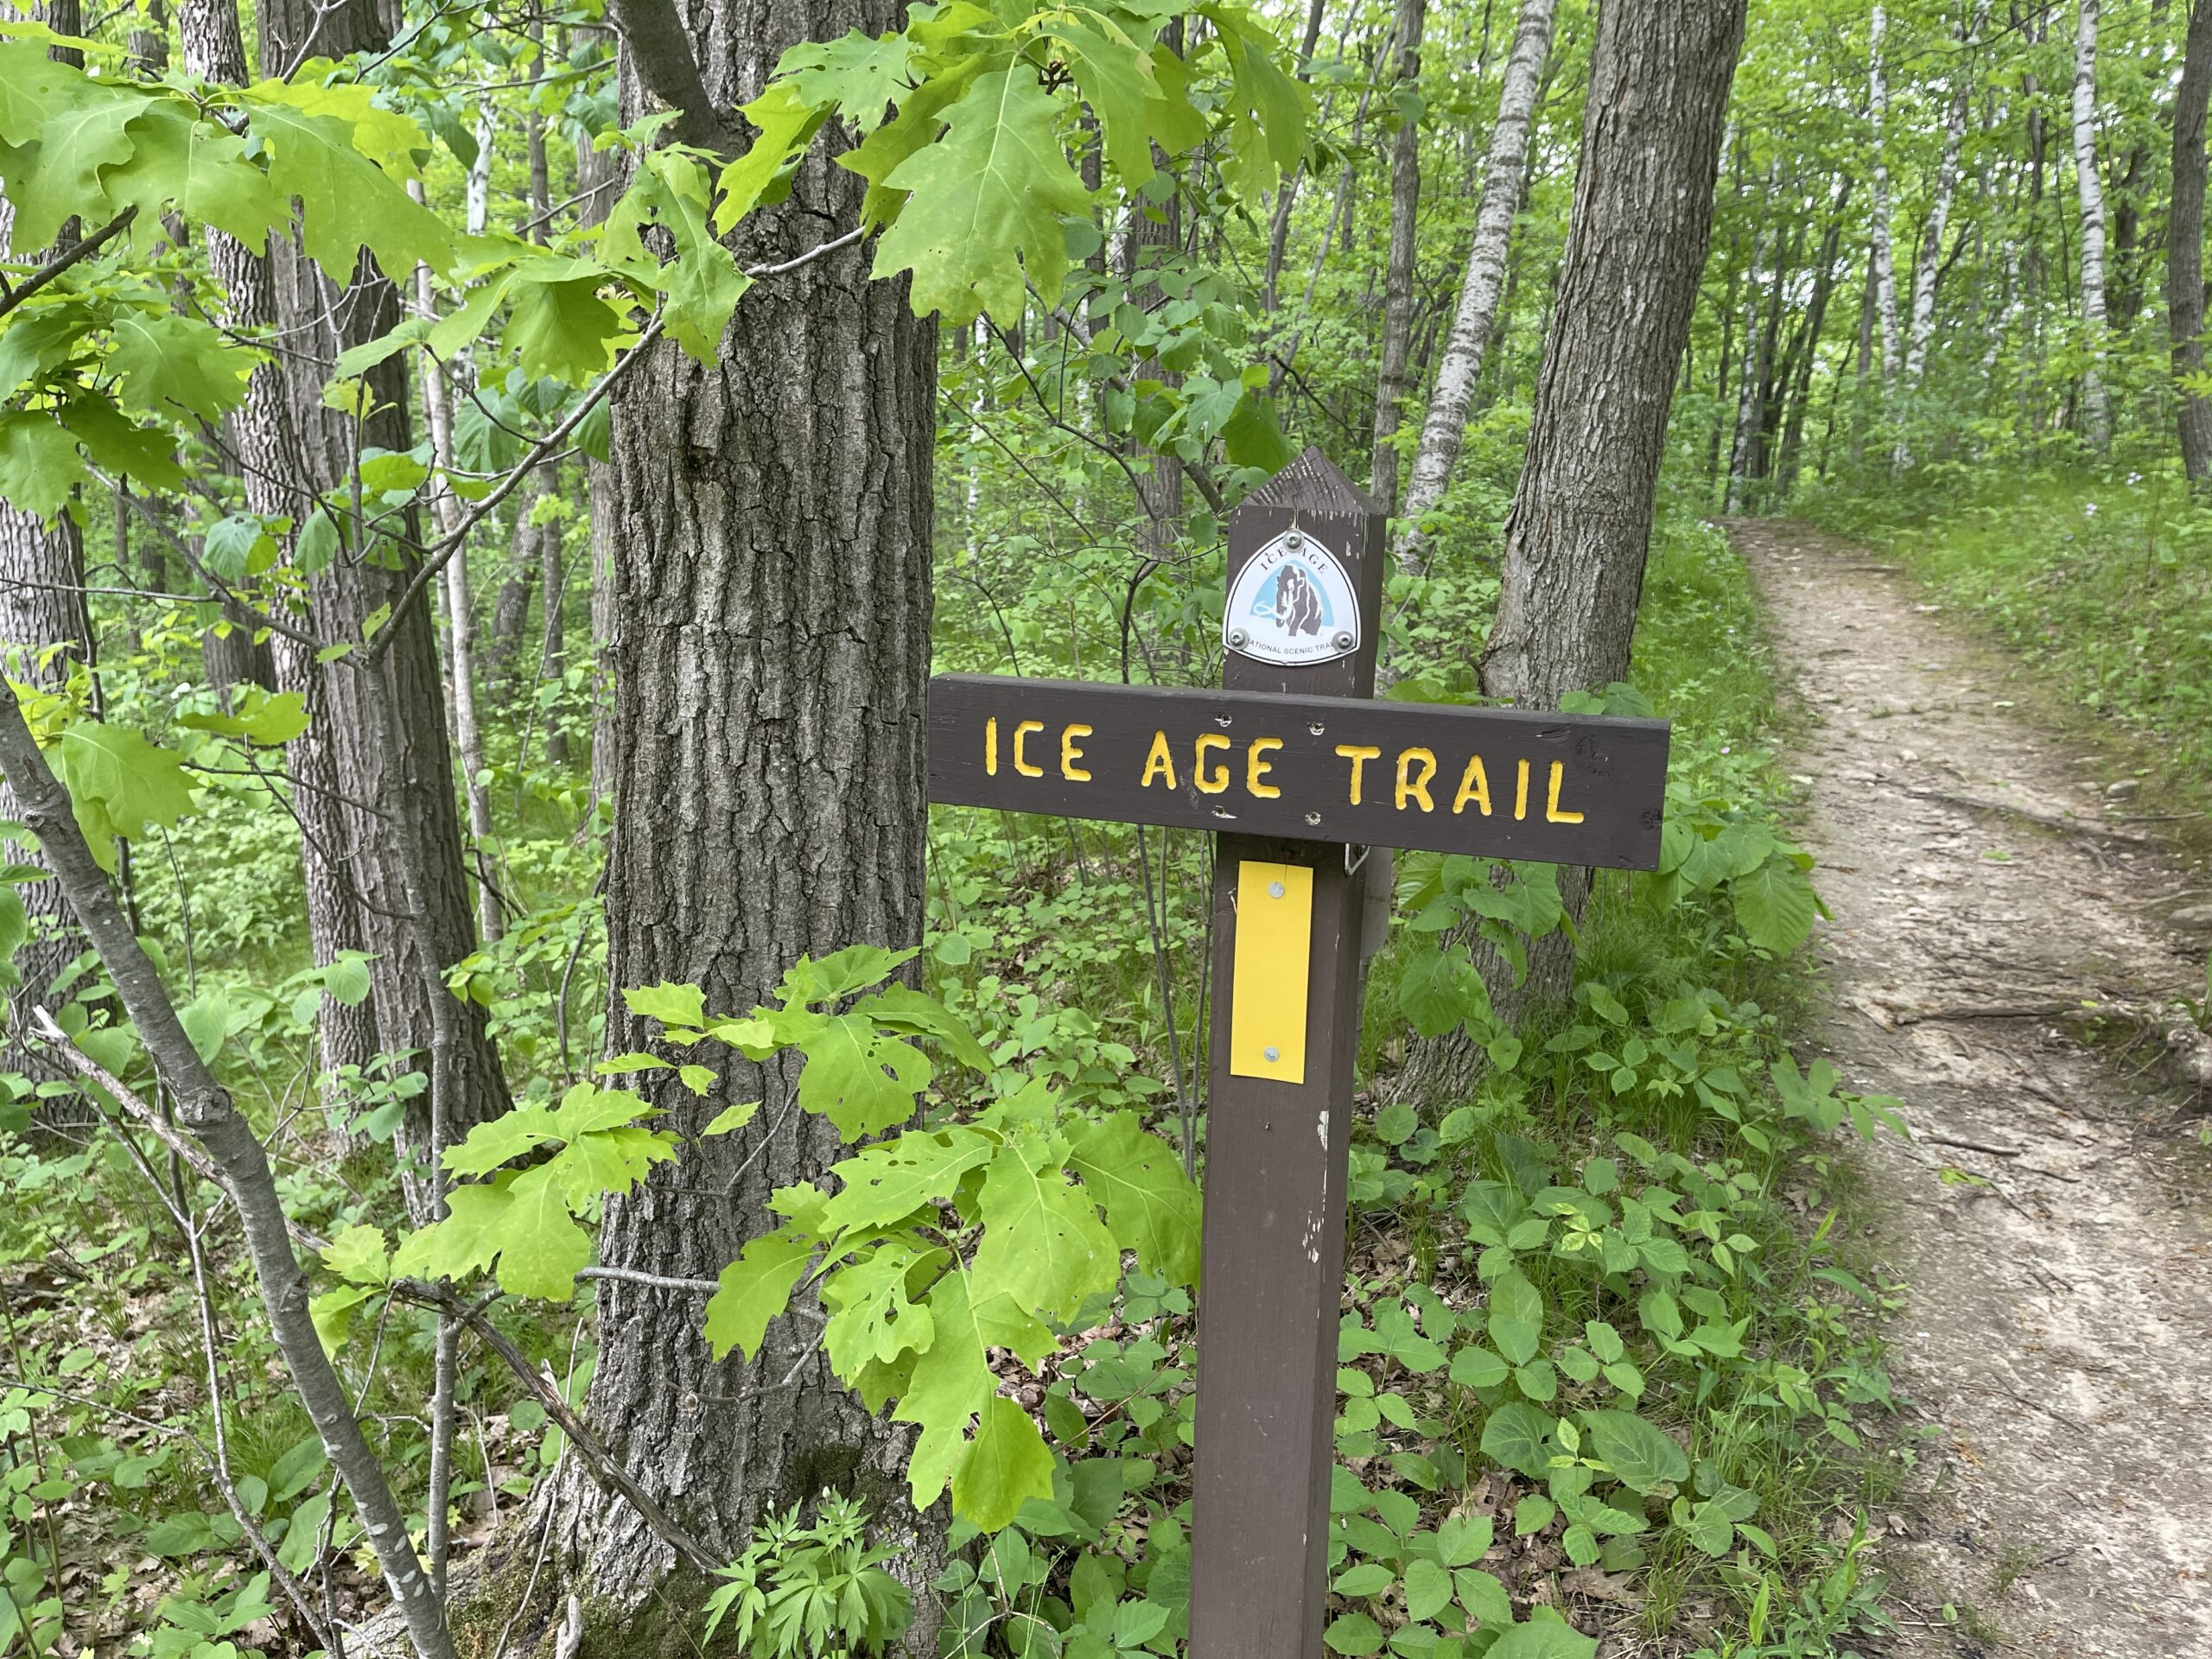 You can hike the Ice Age Trail in Elkhart Lake, WI.